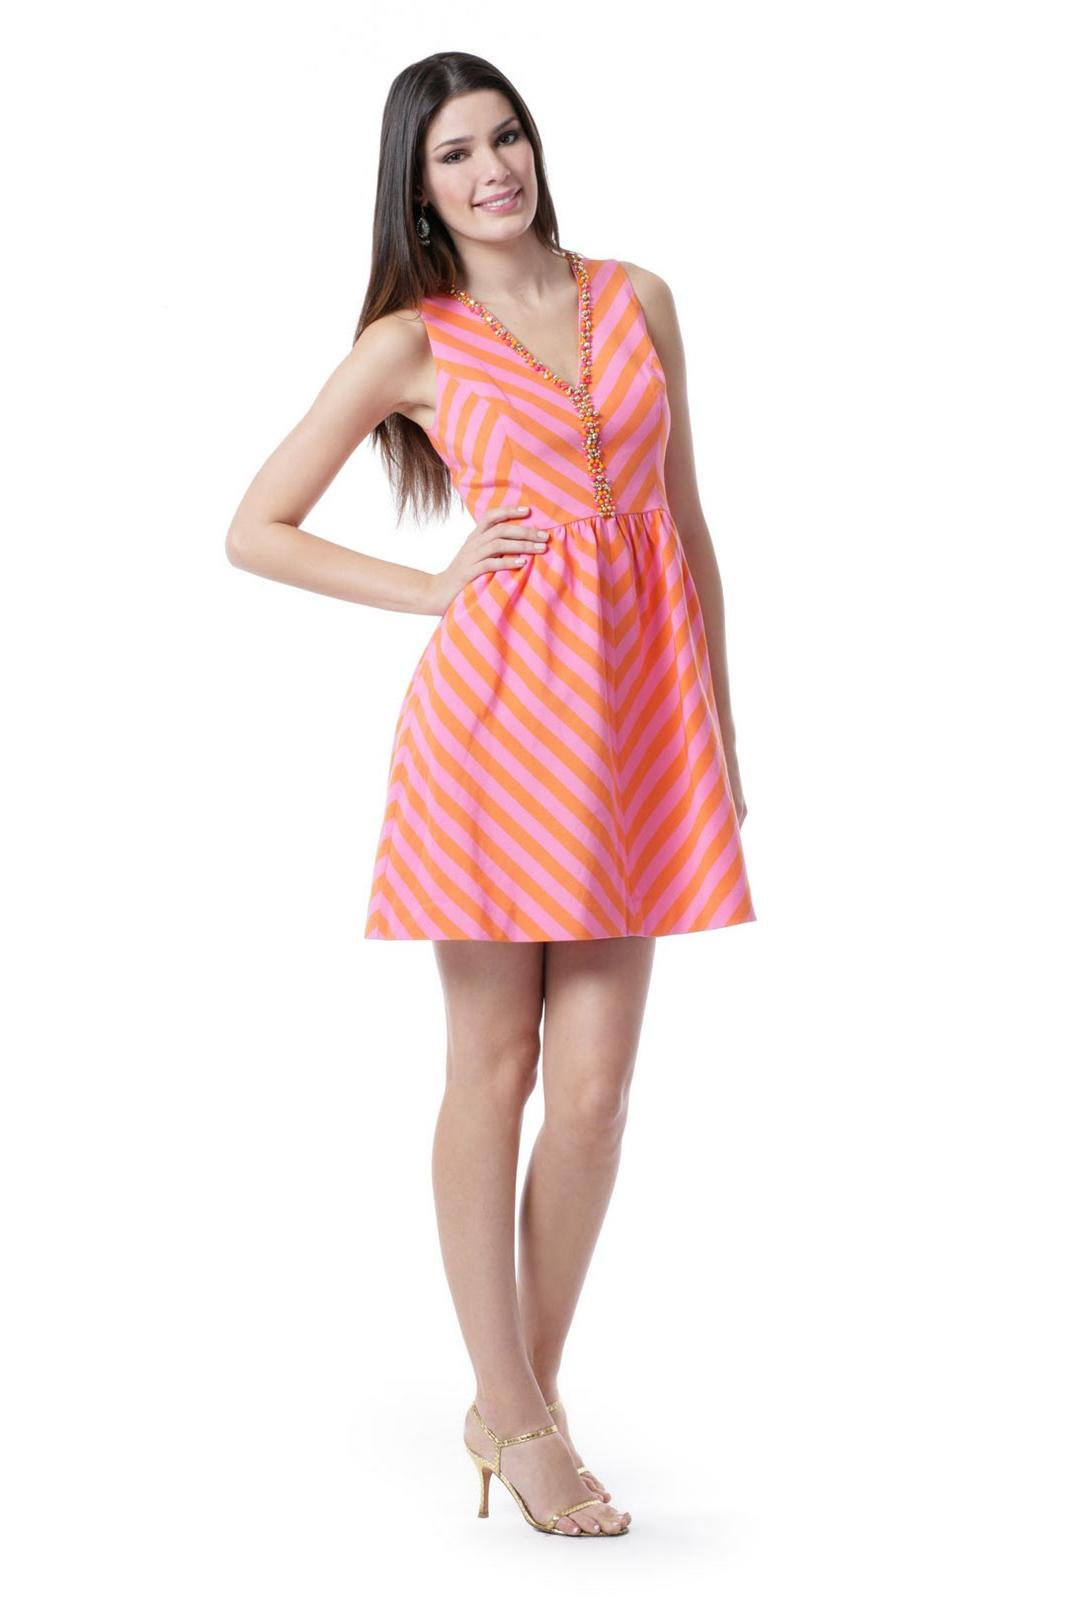 Rent a Lilly Dress!